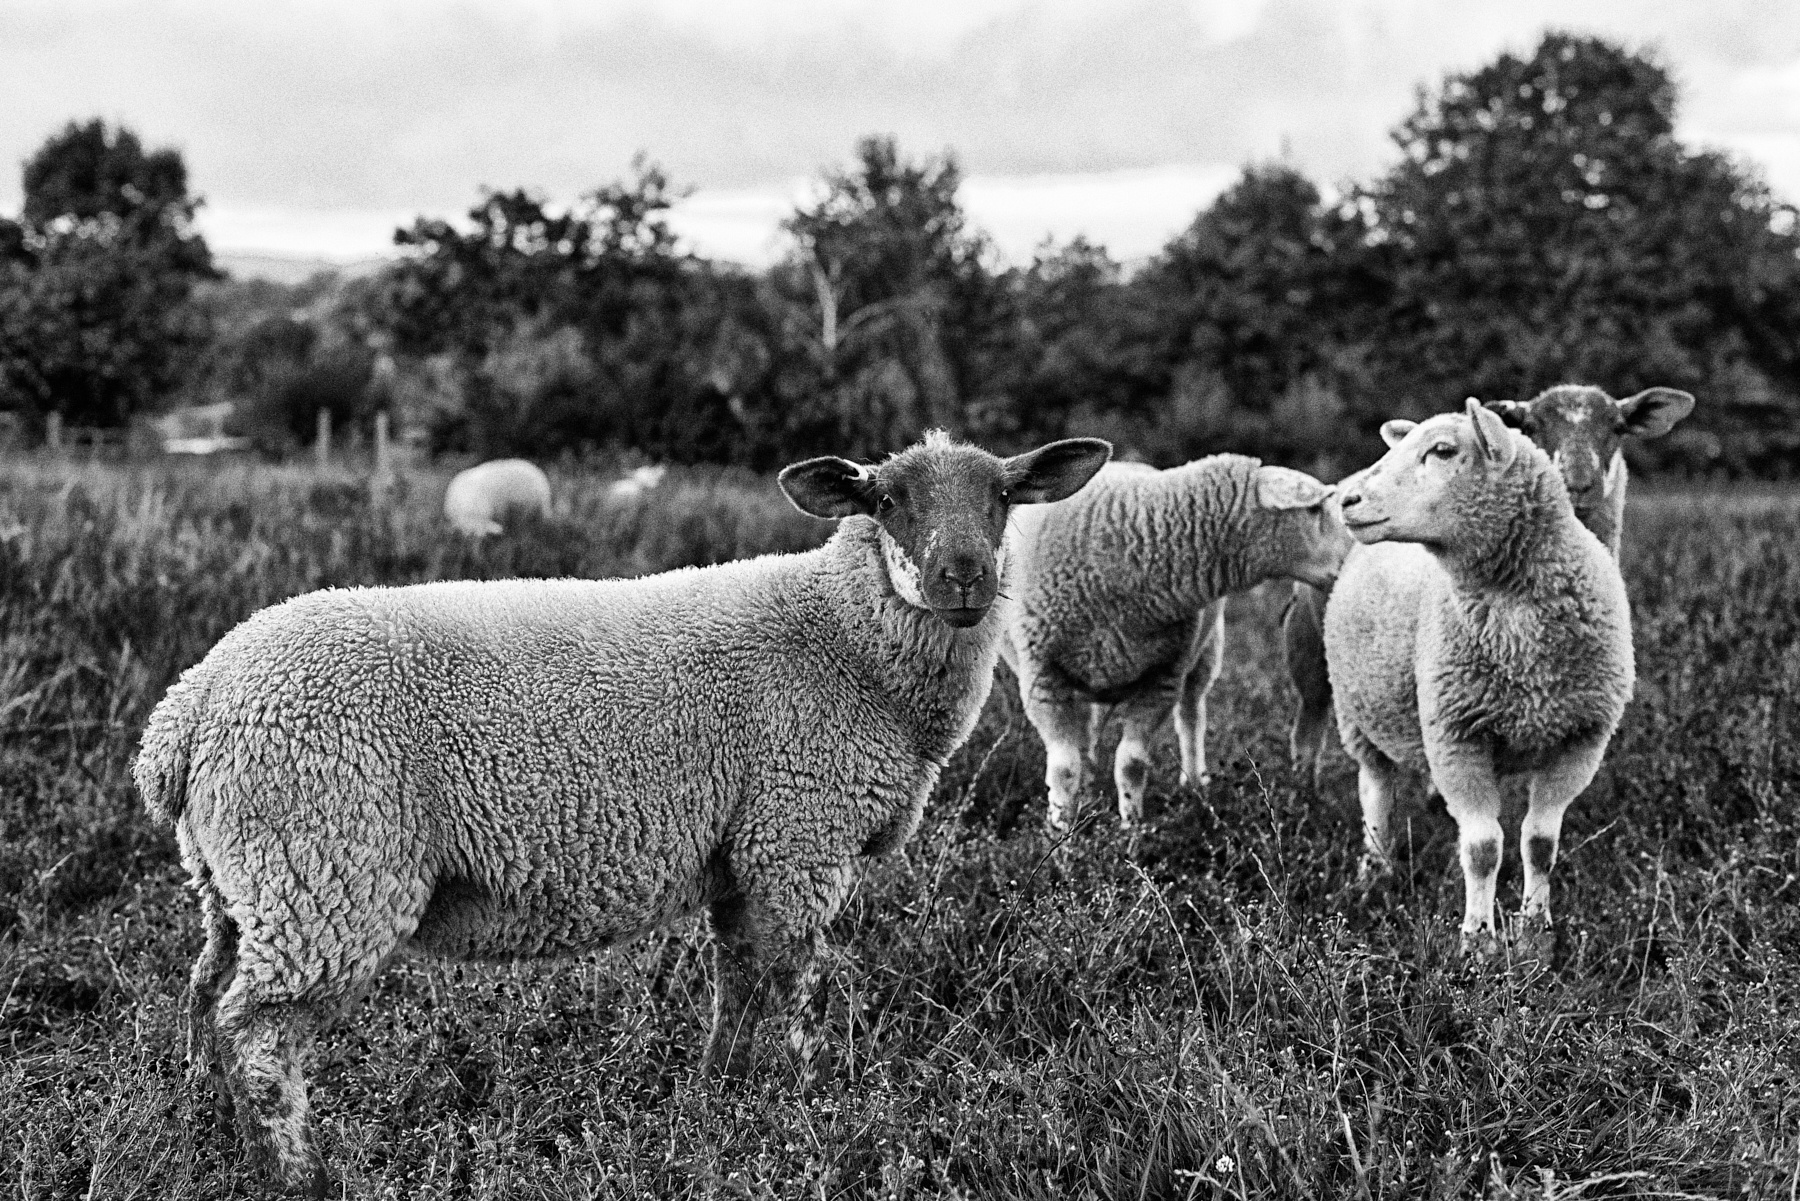 Who're ewe looking at? by Ian K. Iles